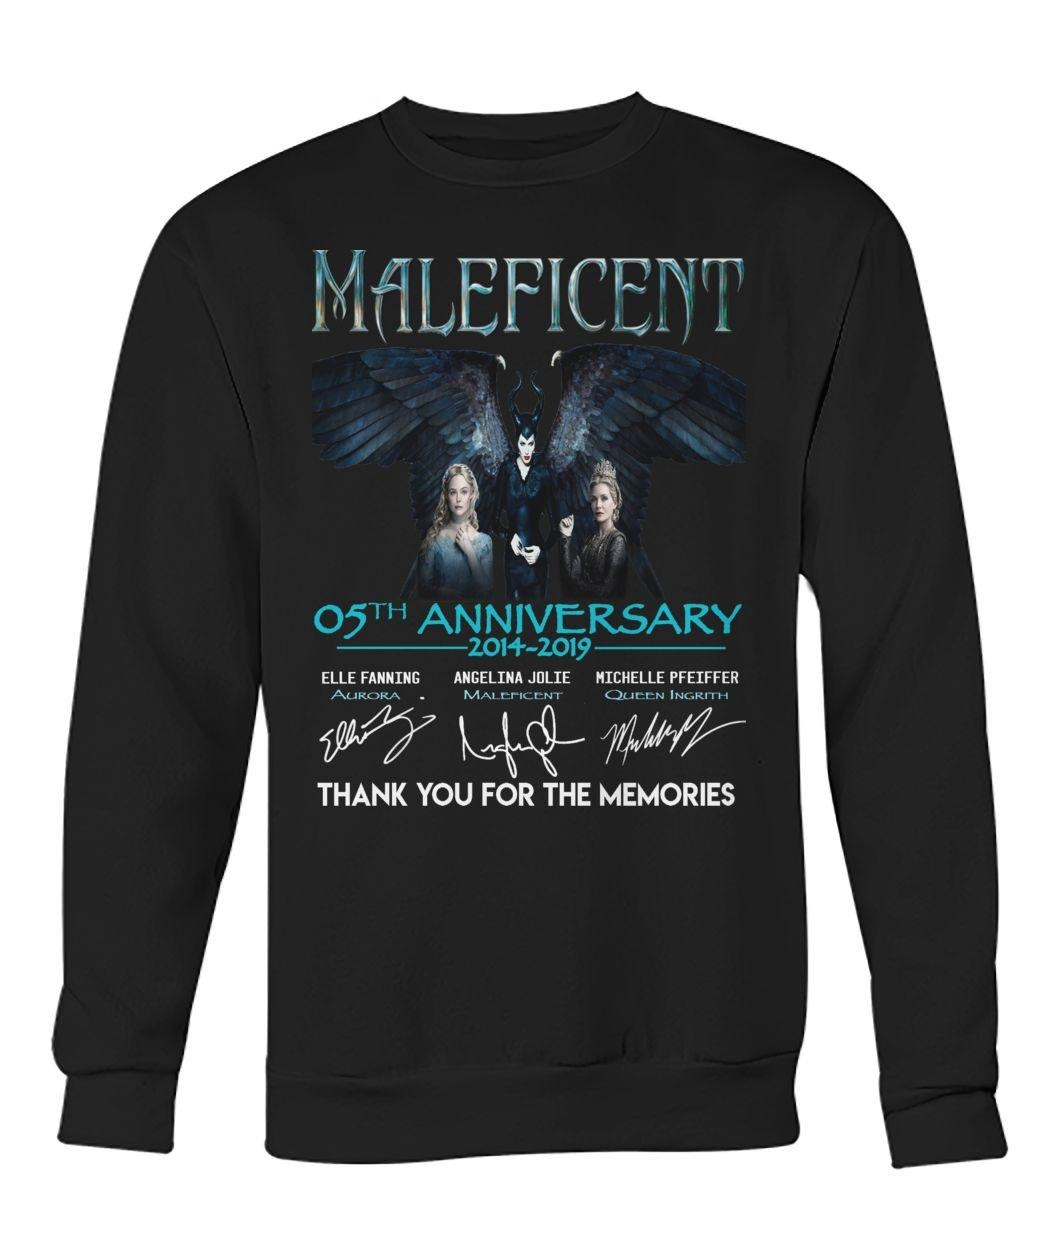 Maleficent 5th Anniversary 2014-2019 signatures thank you for the memories shirt